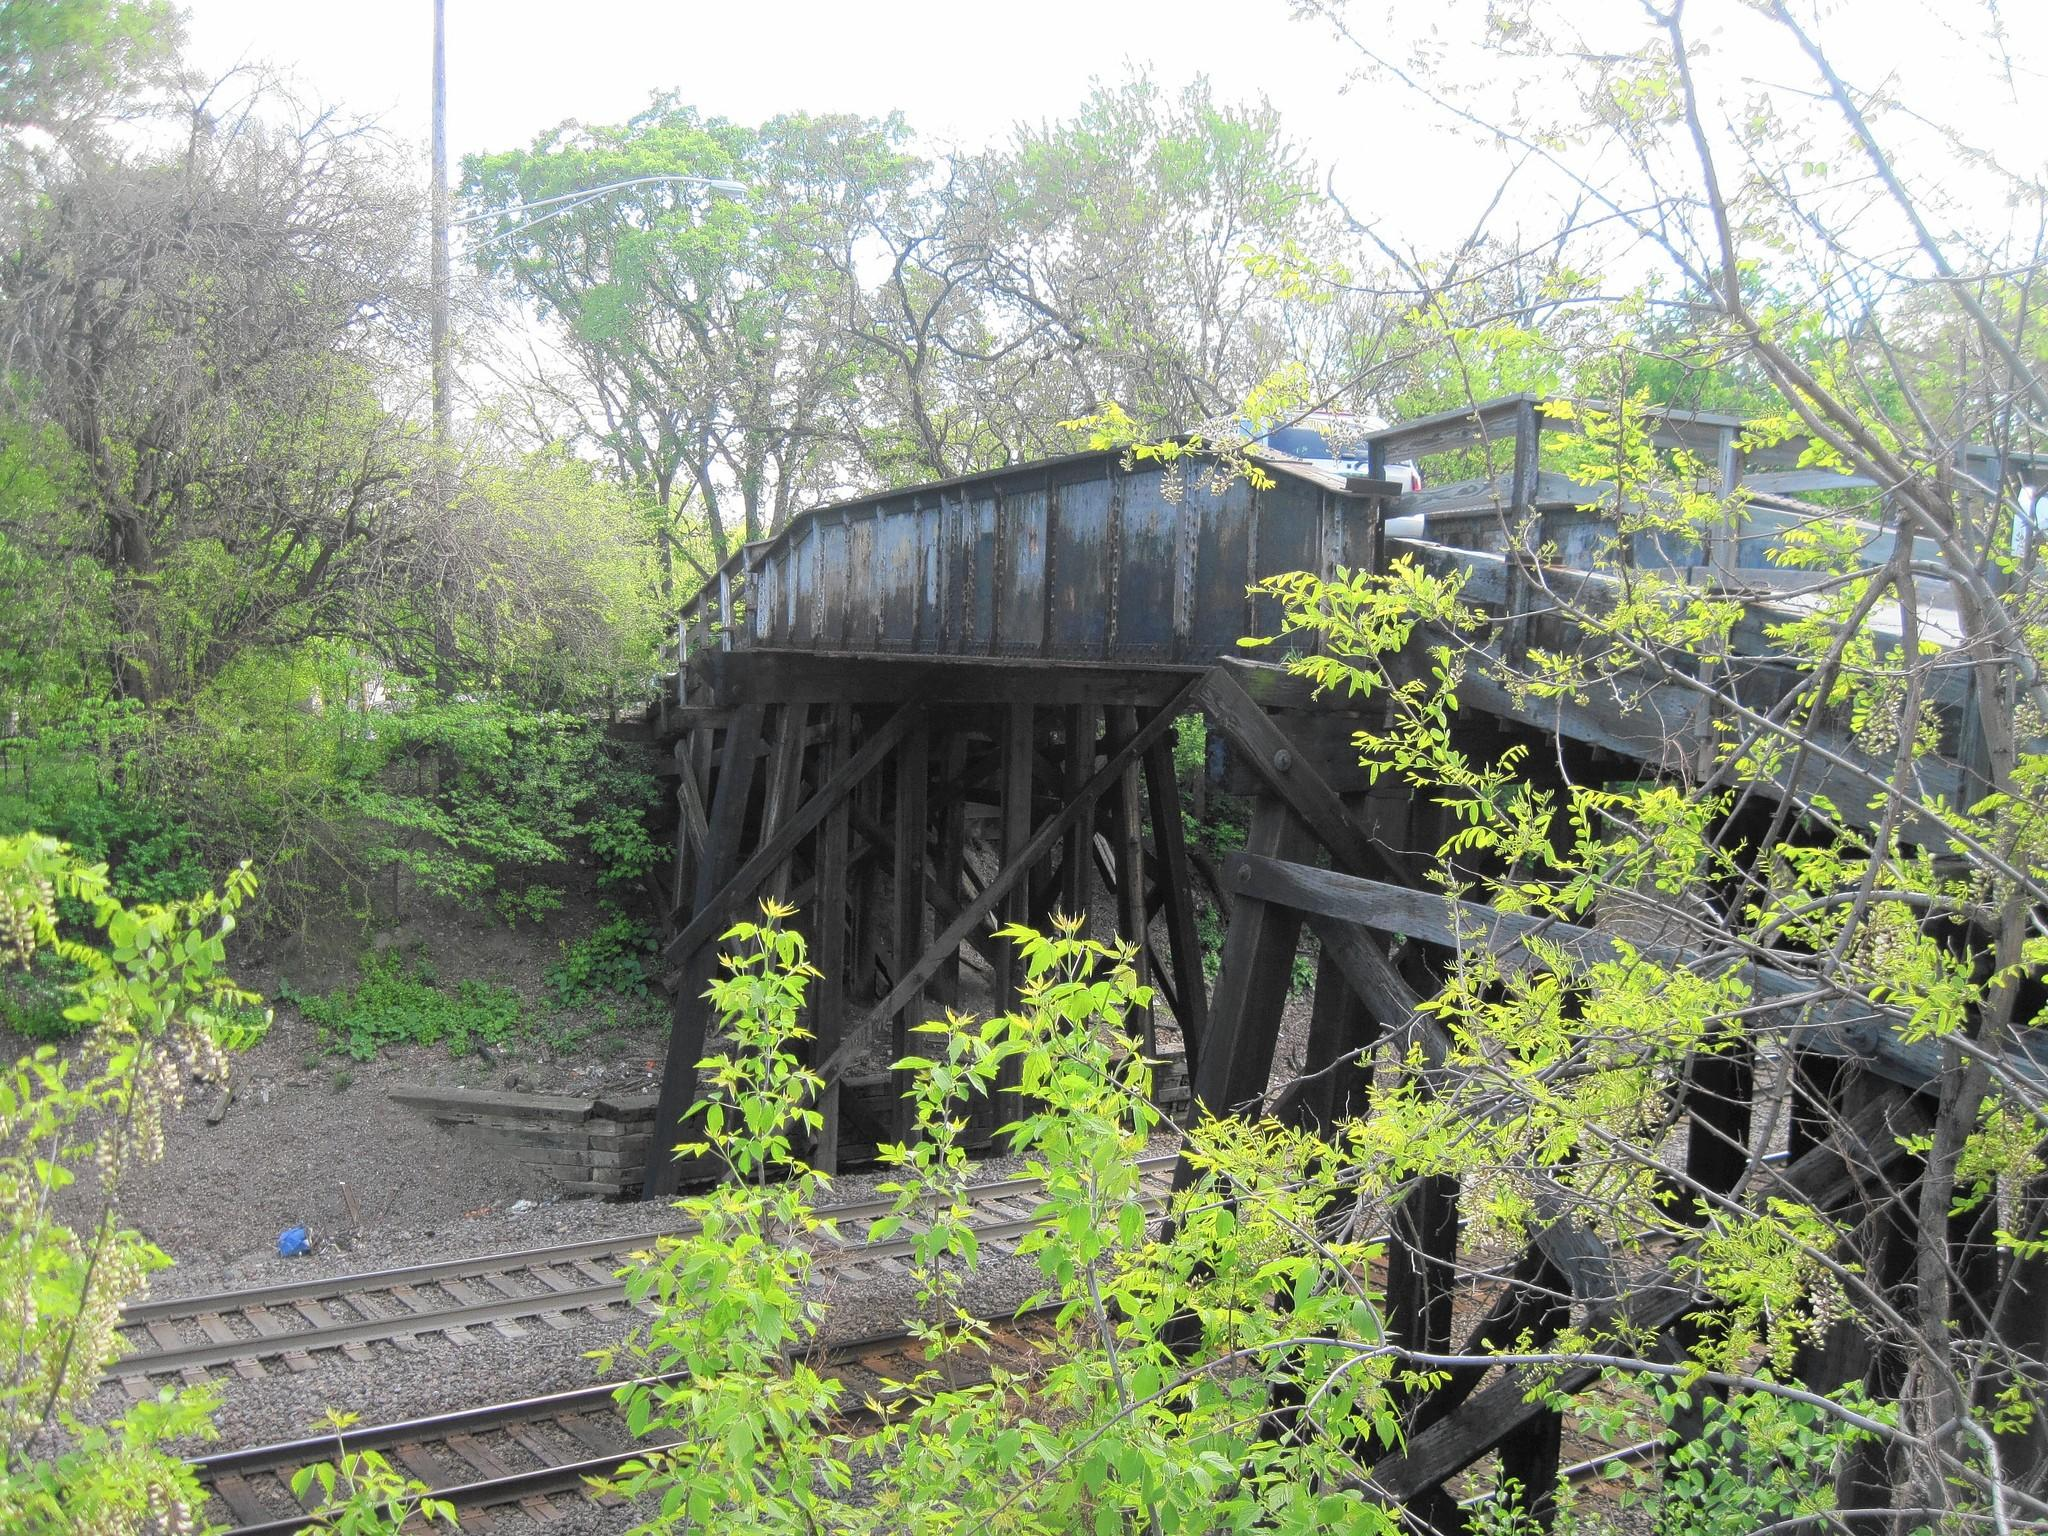 Plans to replace a 130-year-old bridge in Hinsdale are moving forward.